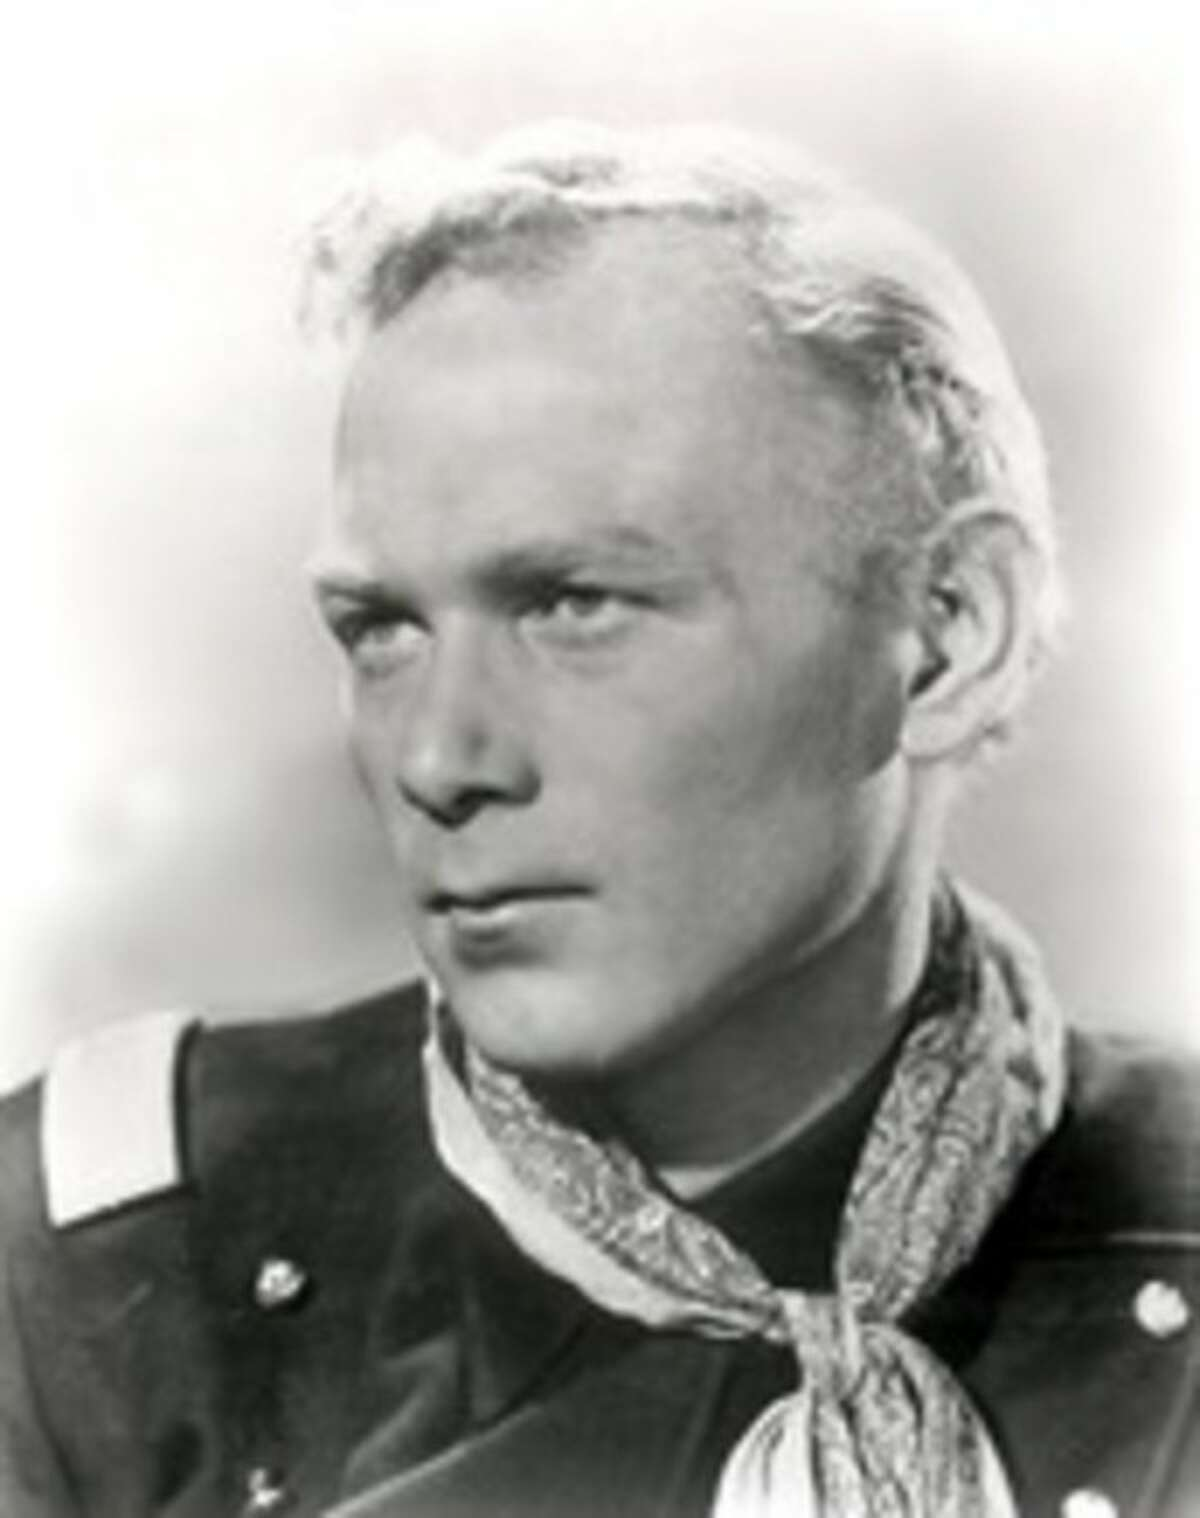 """This 1940s publicity photo released by SCVHistory.com (Santa Clarita Valley Historical Society) shows actor, Harry Carey, Jr., in character from the film, """"She Wore A Yellow Ribbon."""" Carey Jr. starred in such Westerns as """"3 Godfathers"""" and """"Wagon Master."""" His daughter, Melinda Carey, said he died Thursday, Dec. 27, 2012, of natural causes surrounded by friends and family at a hospice facility in Santa Barbara, Calif. (AP Photo/SCVHistory.com)"""